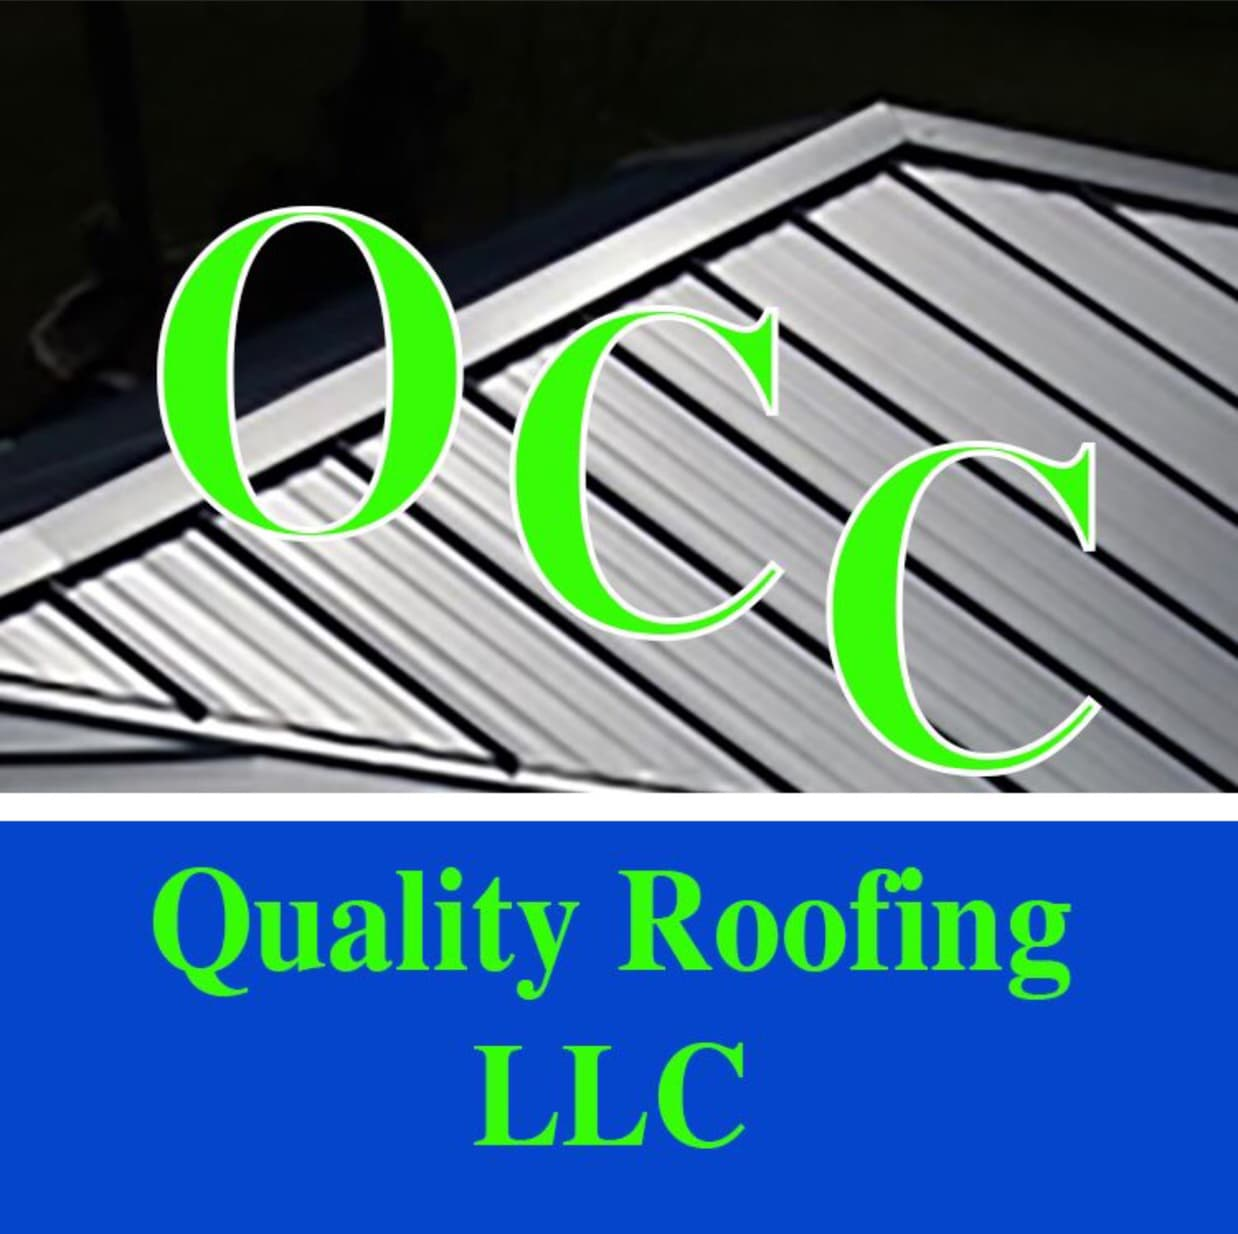 OCC Quality Roofing LLC